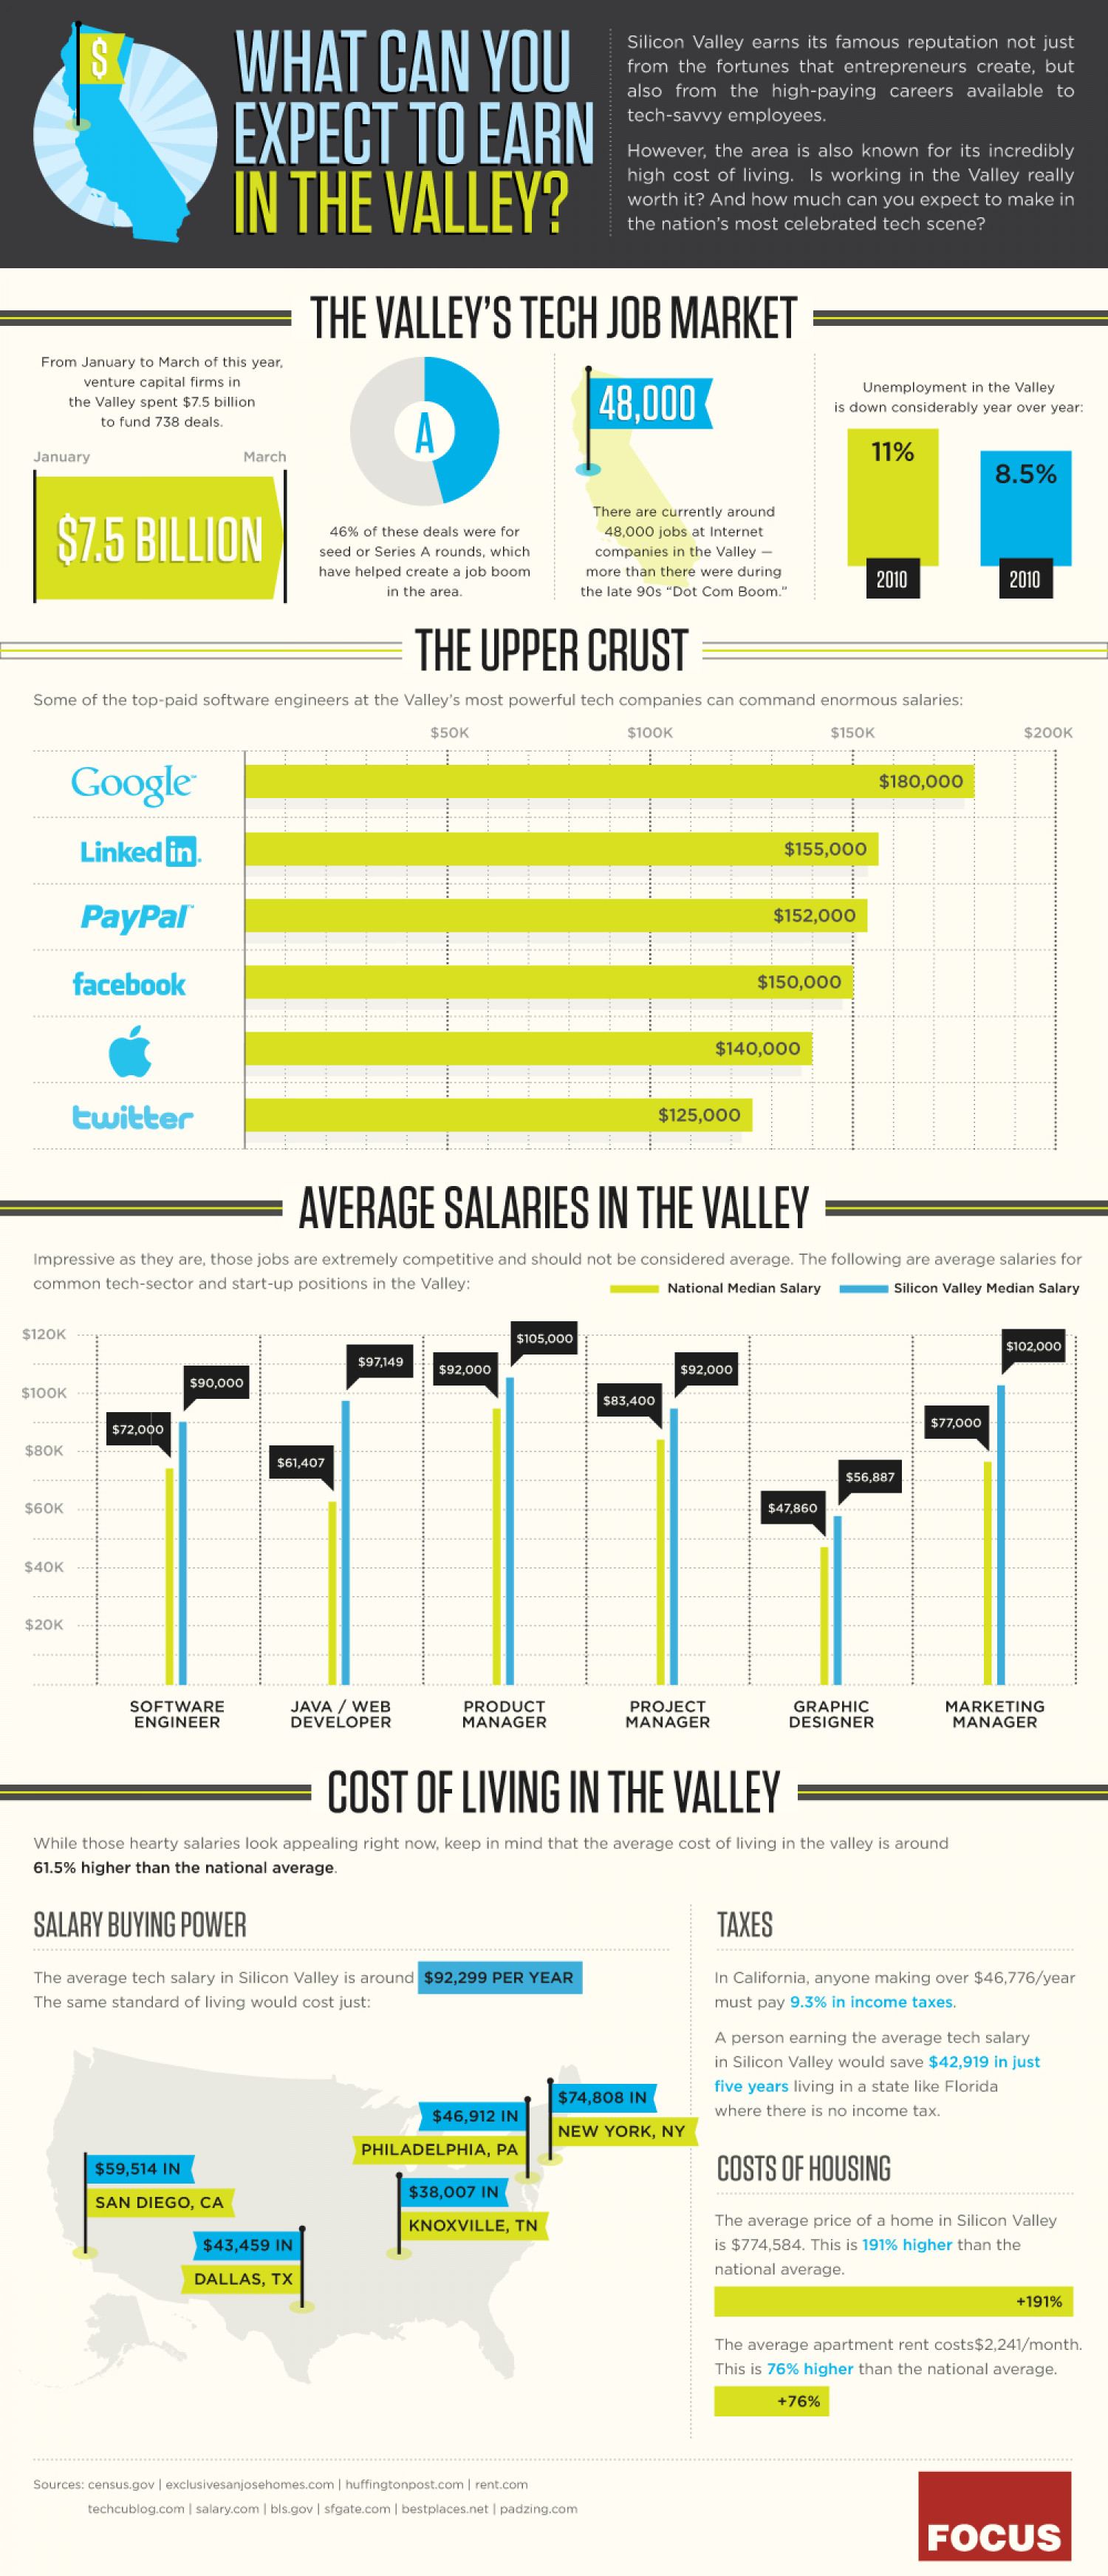 What Can You Expect To Earn In The Valley? Infographic